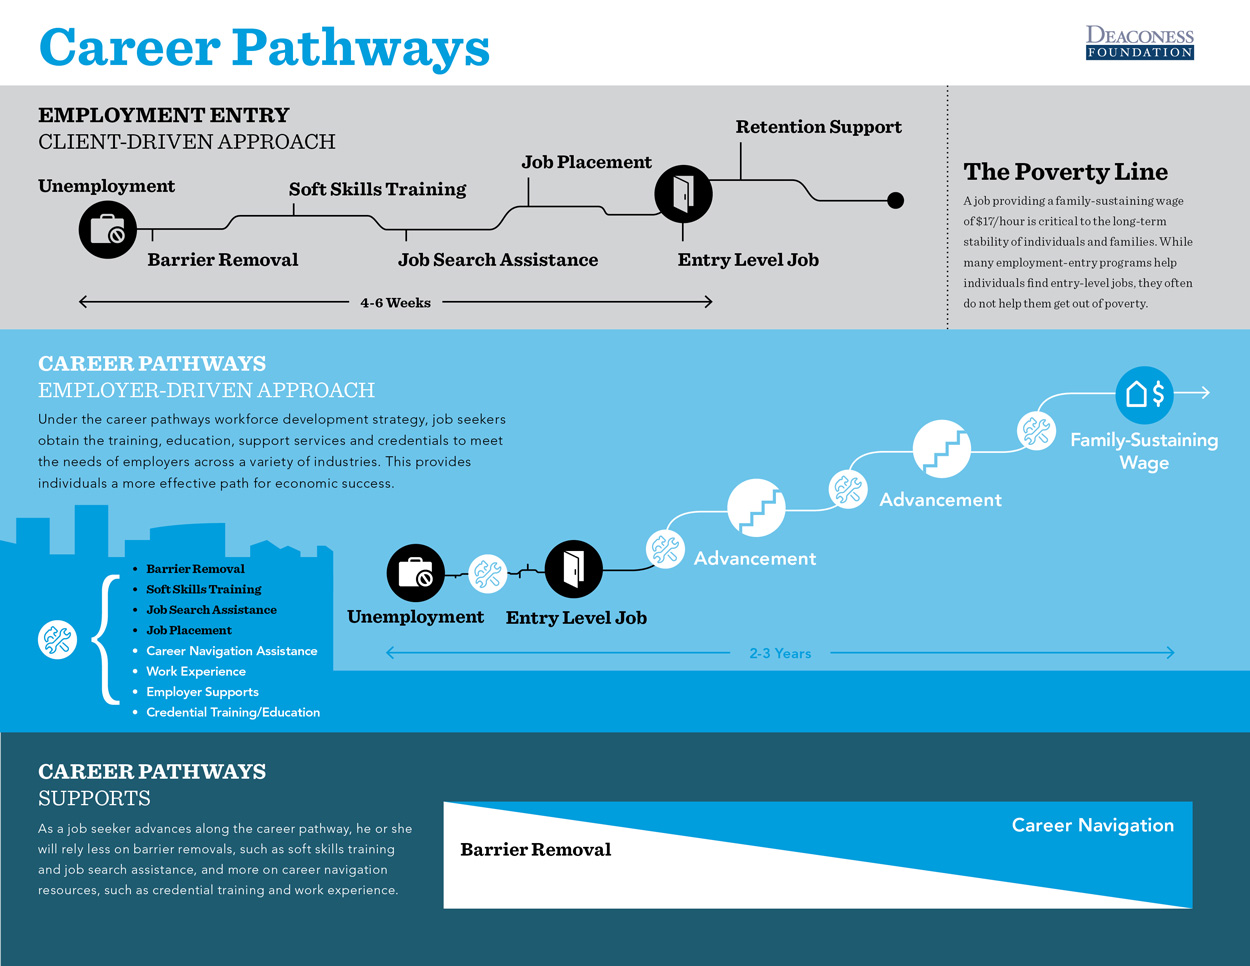 Deaconess Foundation Career Pathways Infographic